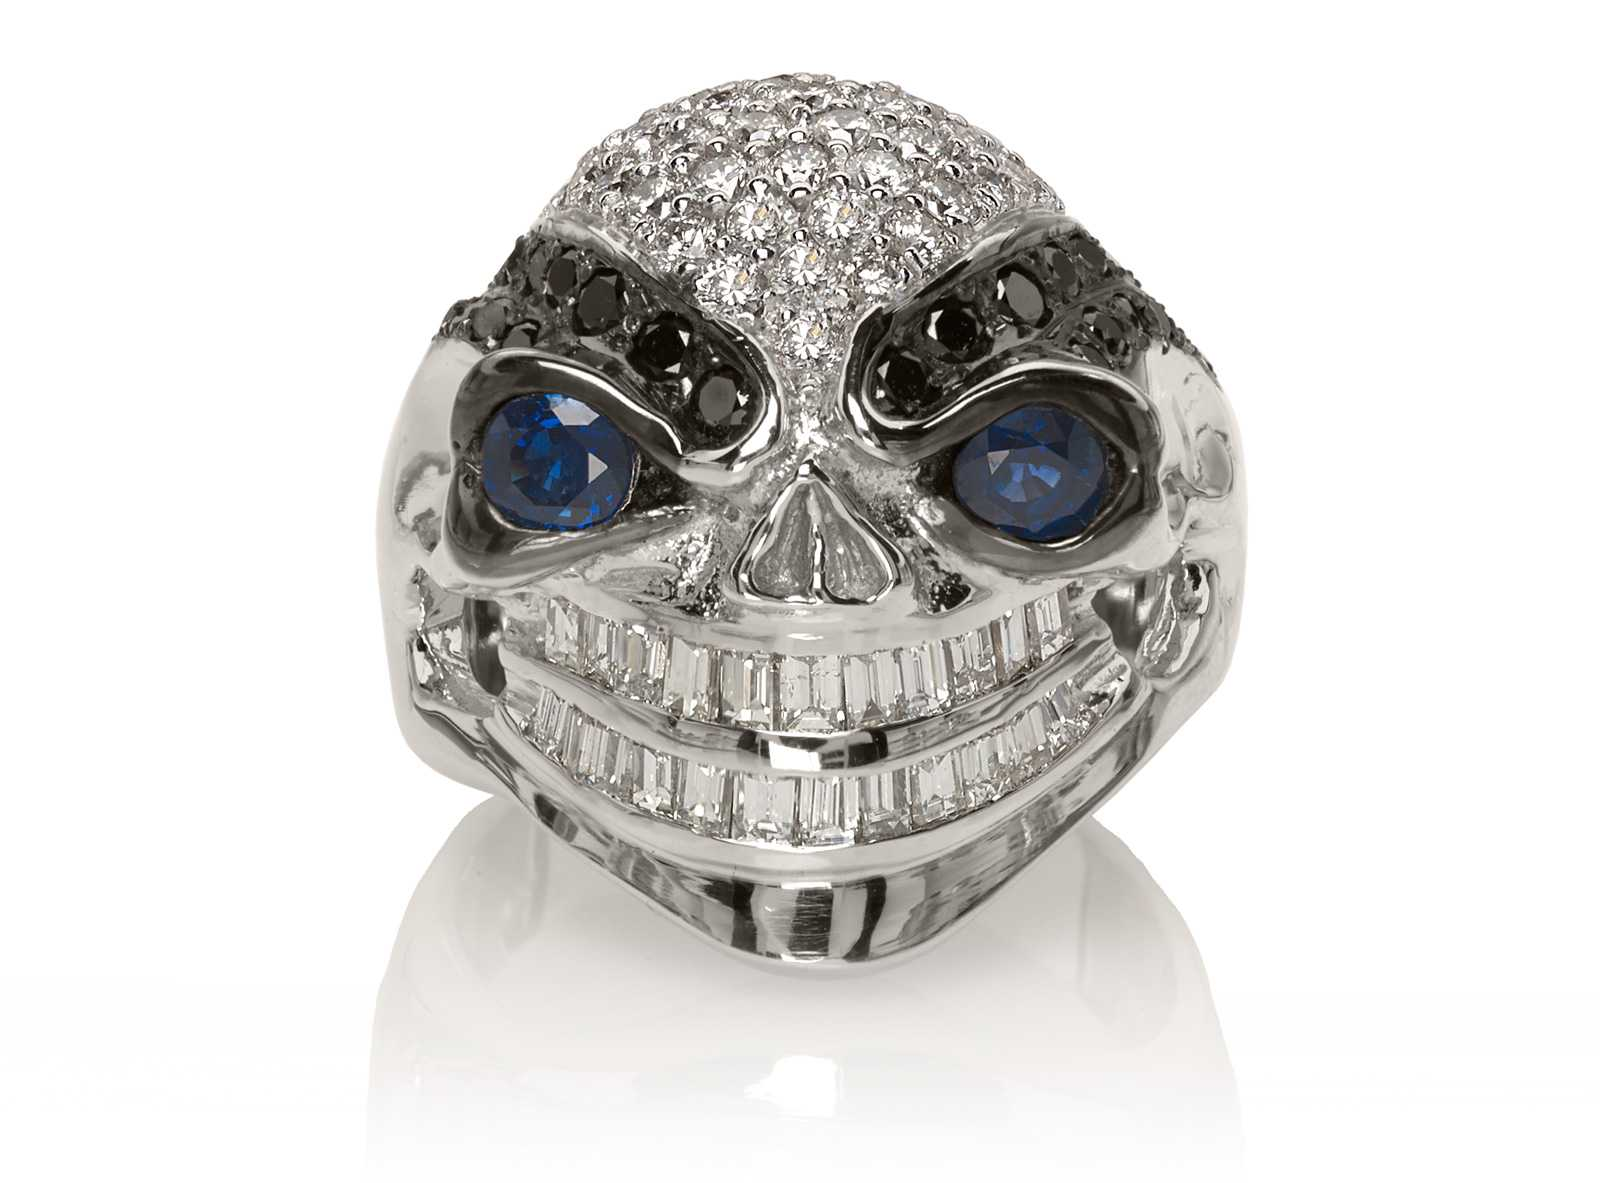 RG3028 Wicked Willy skull ring (Front View) in White Gold with White & Black Diamonds, Blue Sapphires, designed by Steve Soffa